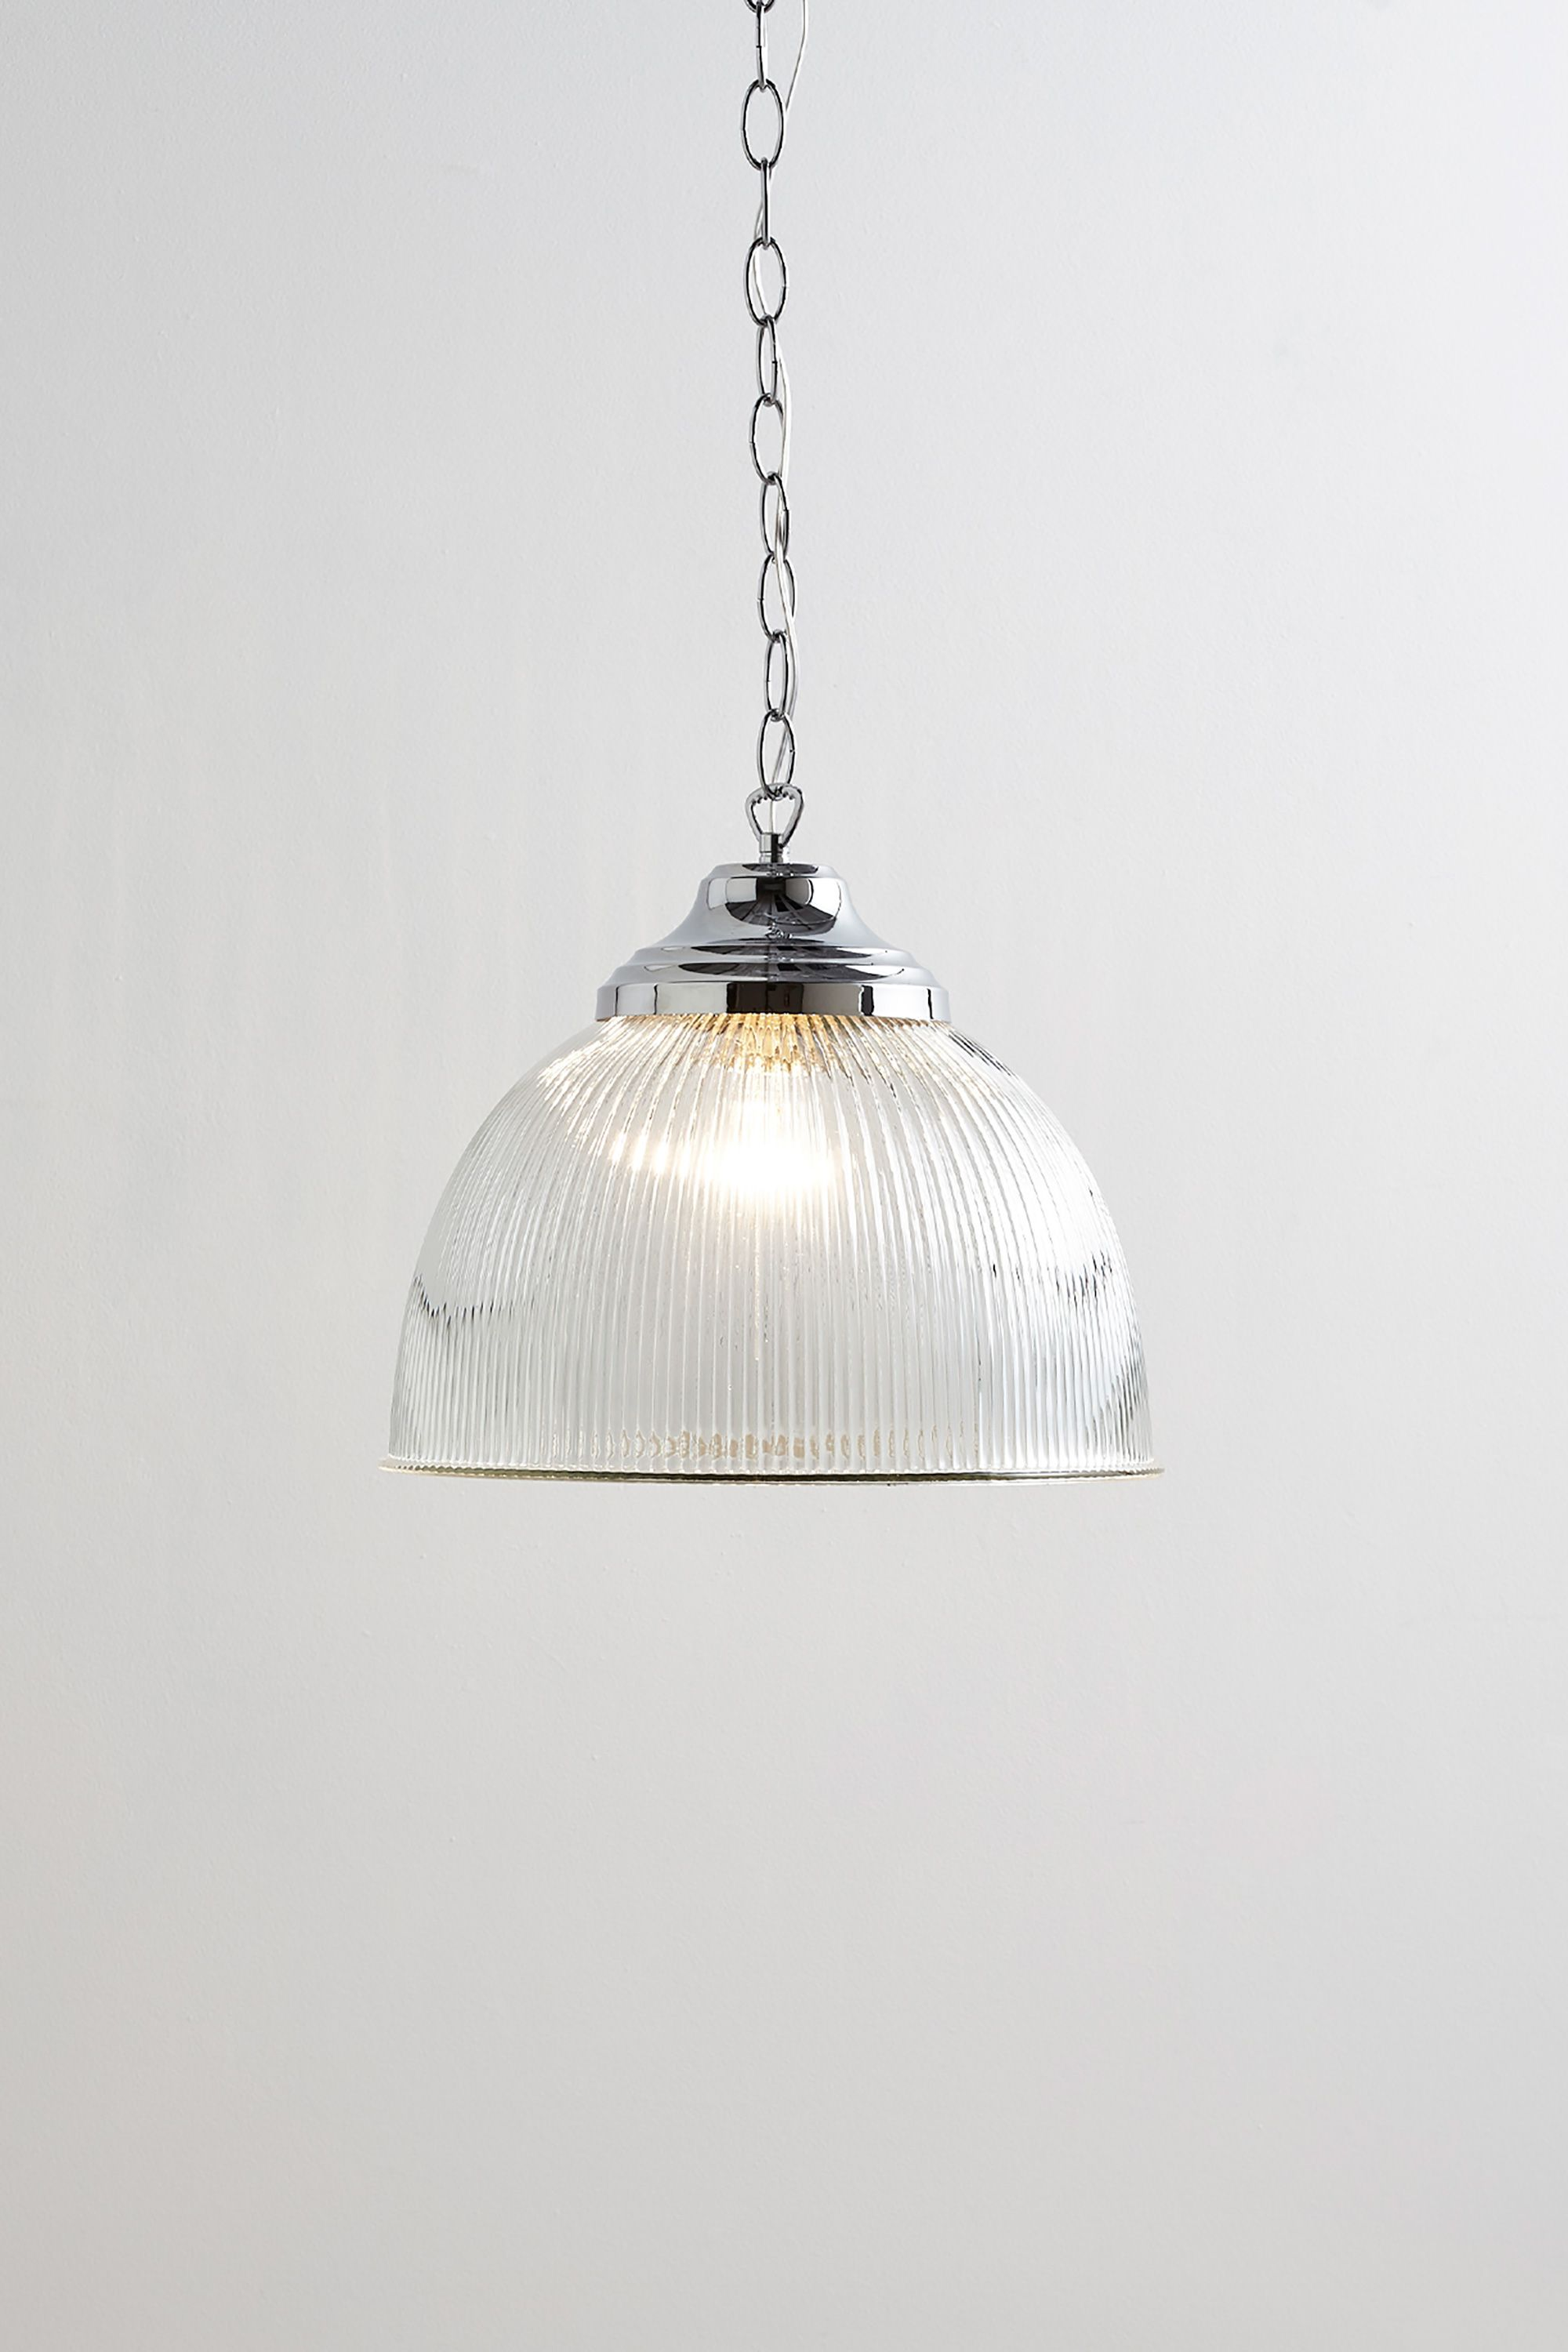 Hallie glass ceiling pendant light bhs bathroom pinterest hallie glass ceiling pendant light bhs aloadofball Image collections